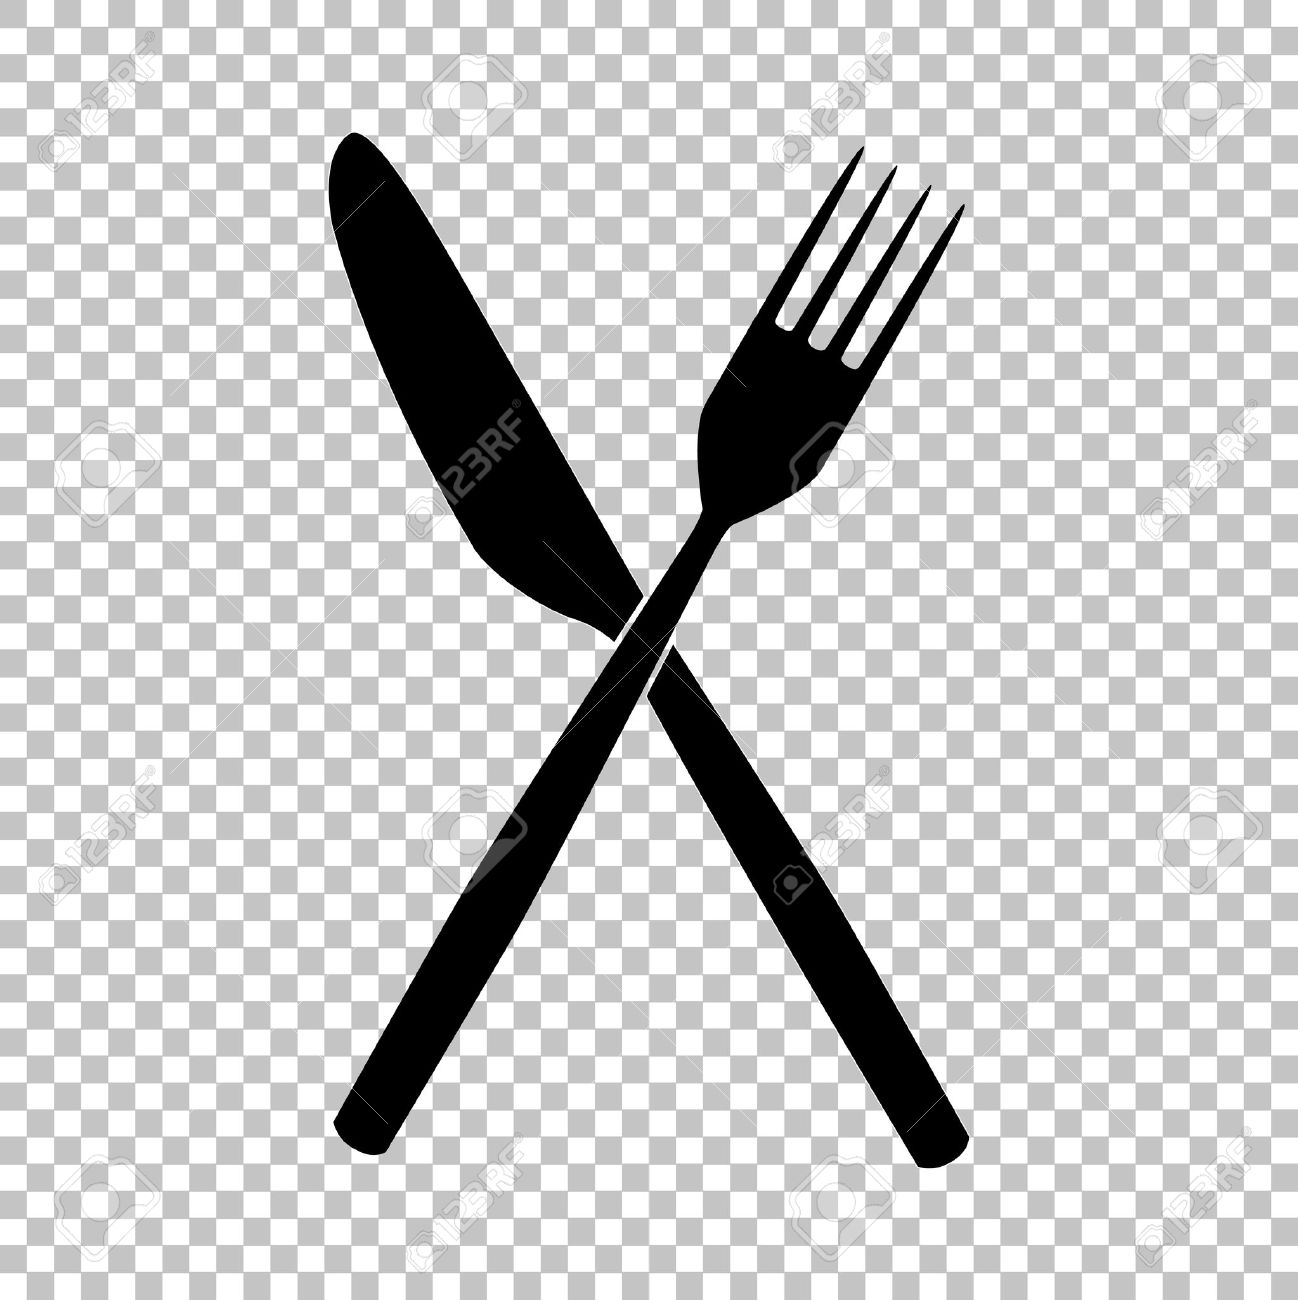 hight resolution of 52179466 fork and knife sign flat style icon